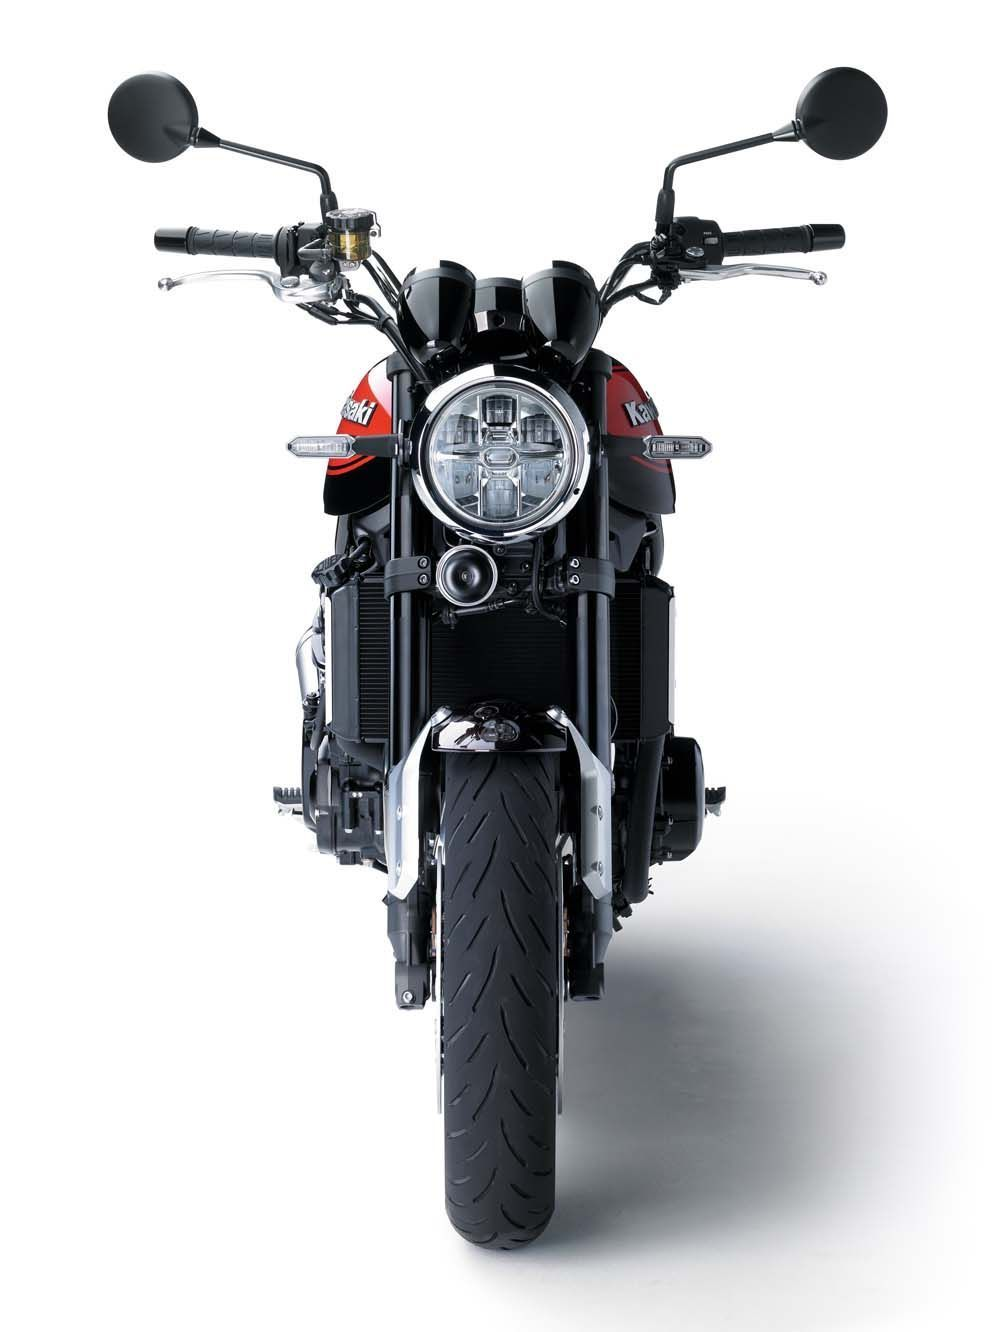 z900-rs-28